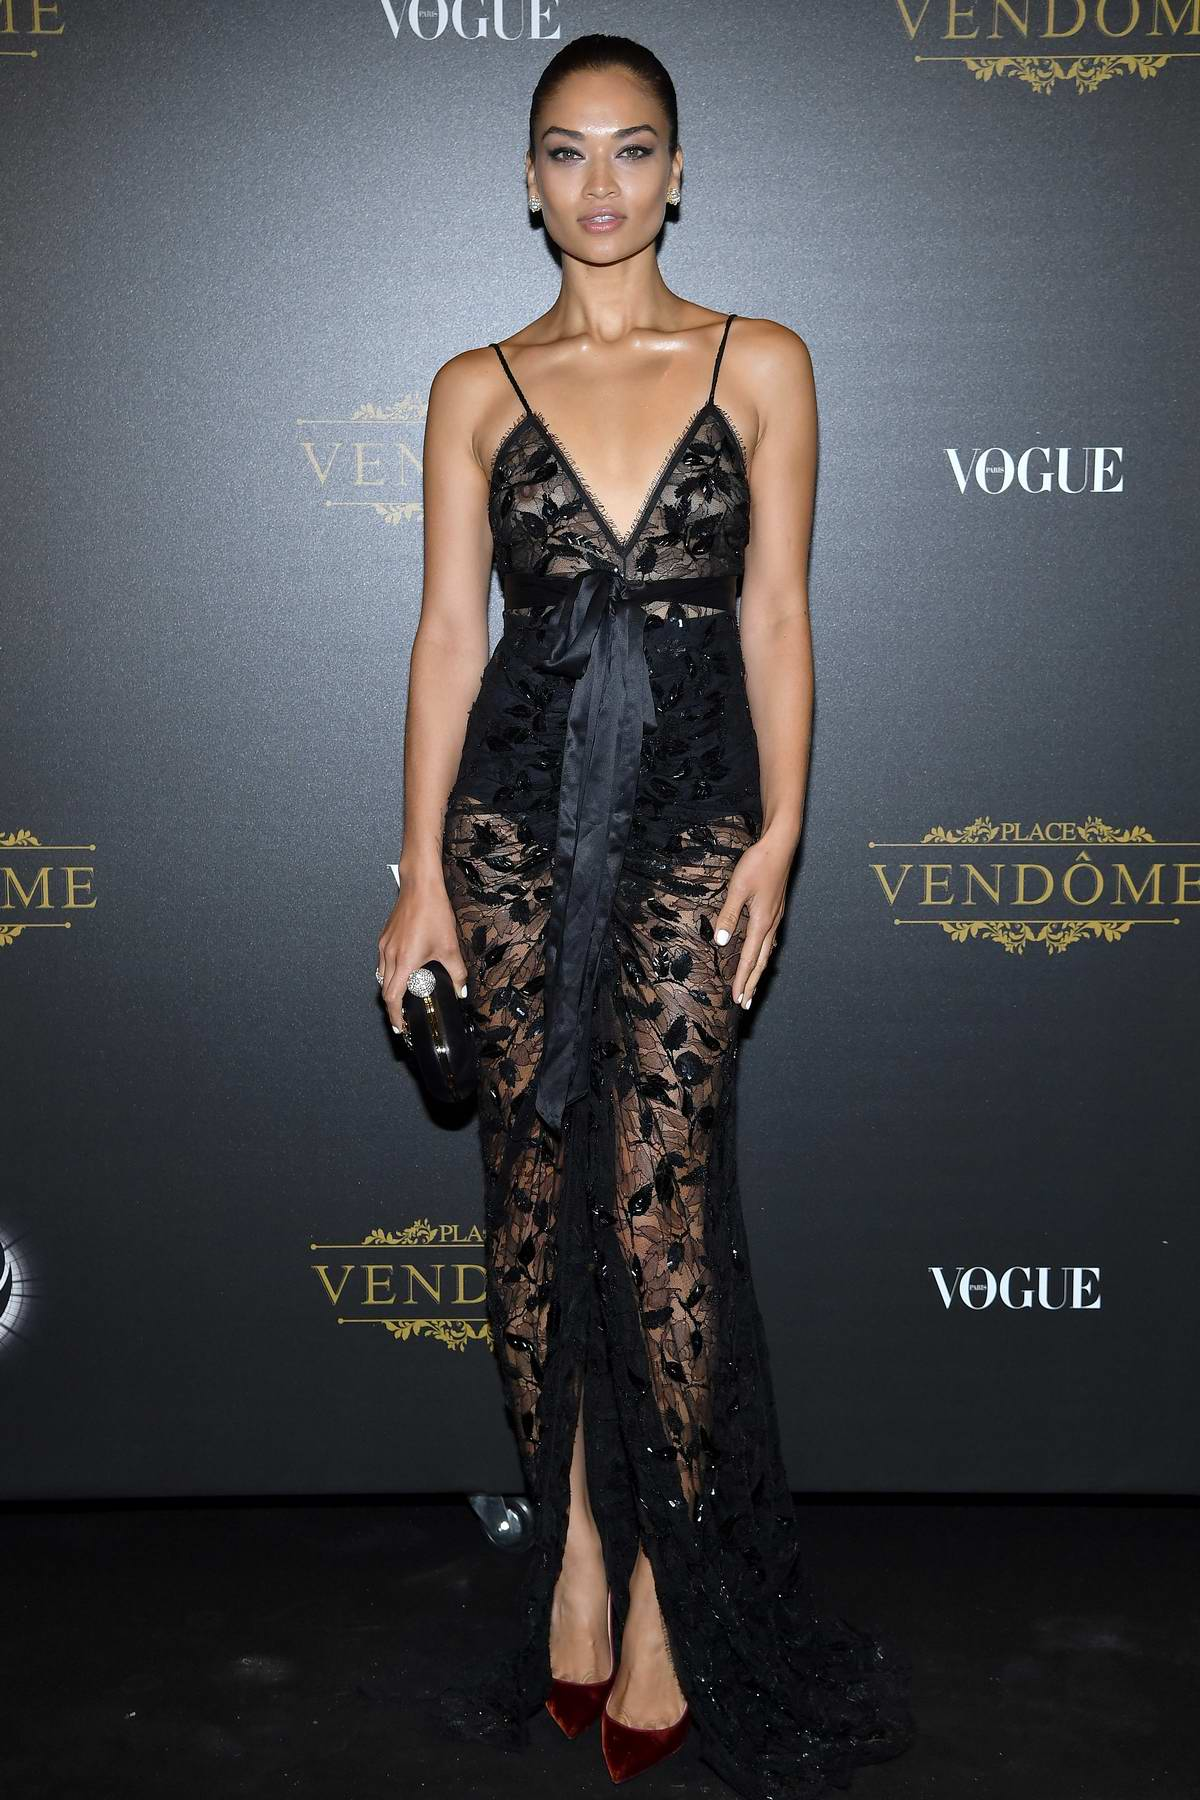 Shanina Shaik attends the Vogue x Irving Penn party during Paris Fashion Week SS 2020 in Paris, France